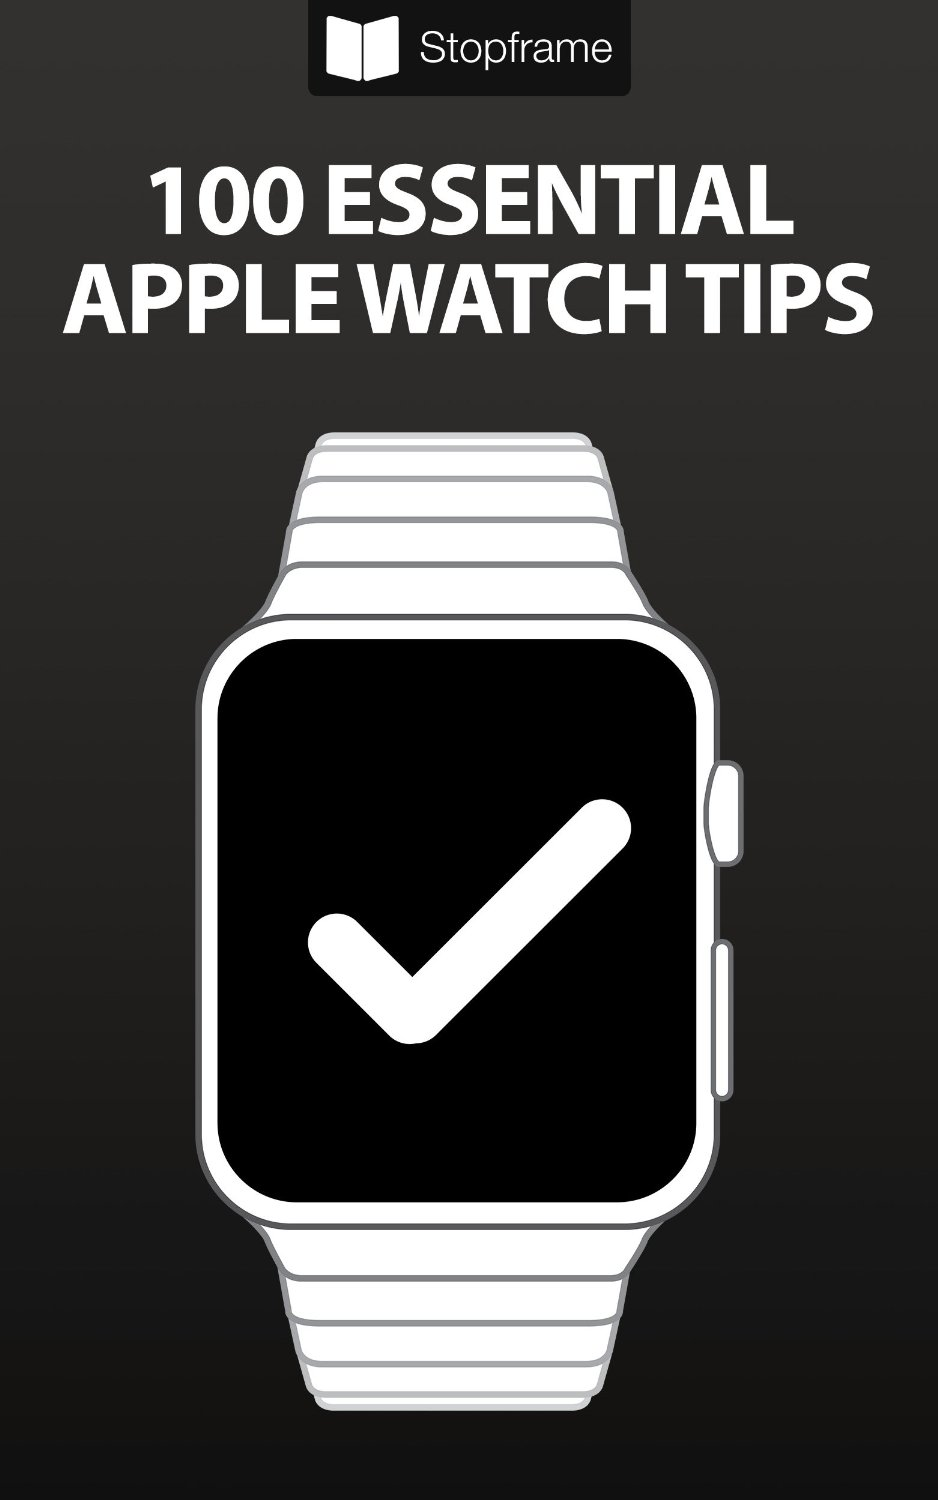 100 Essential Apple Watch Tips free download